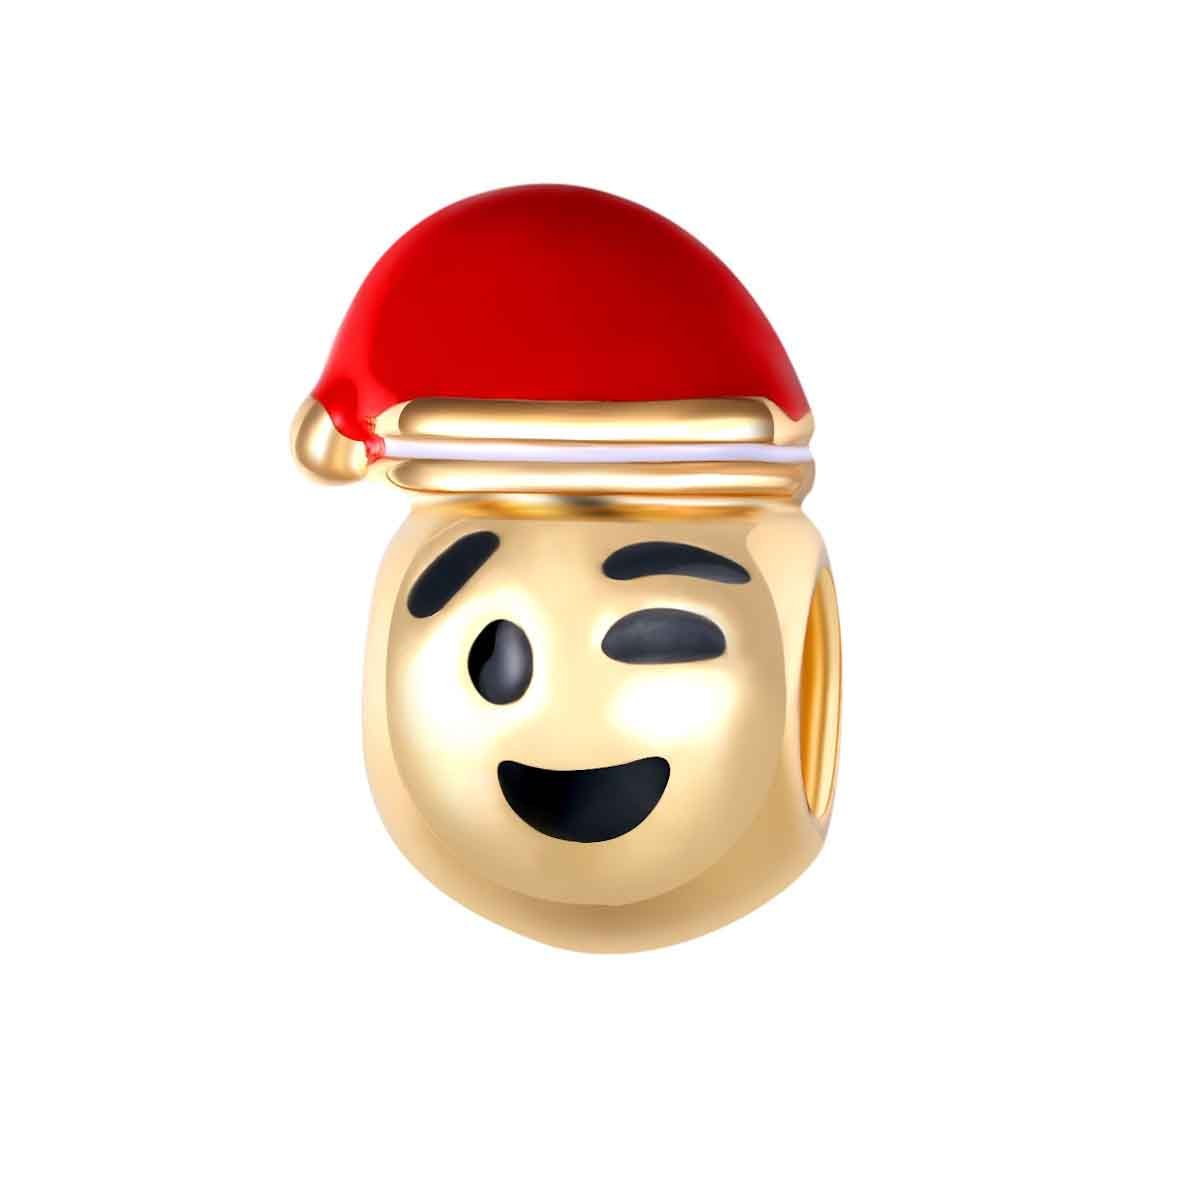 Bling Stars Gold Plated Christmas Hat Wink Emoji Smiley Emoticon